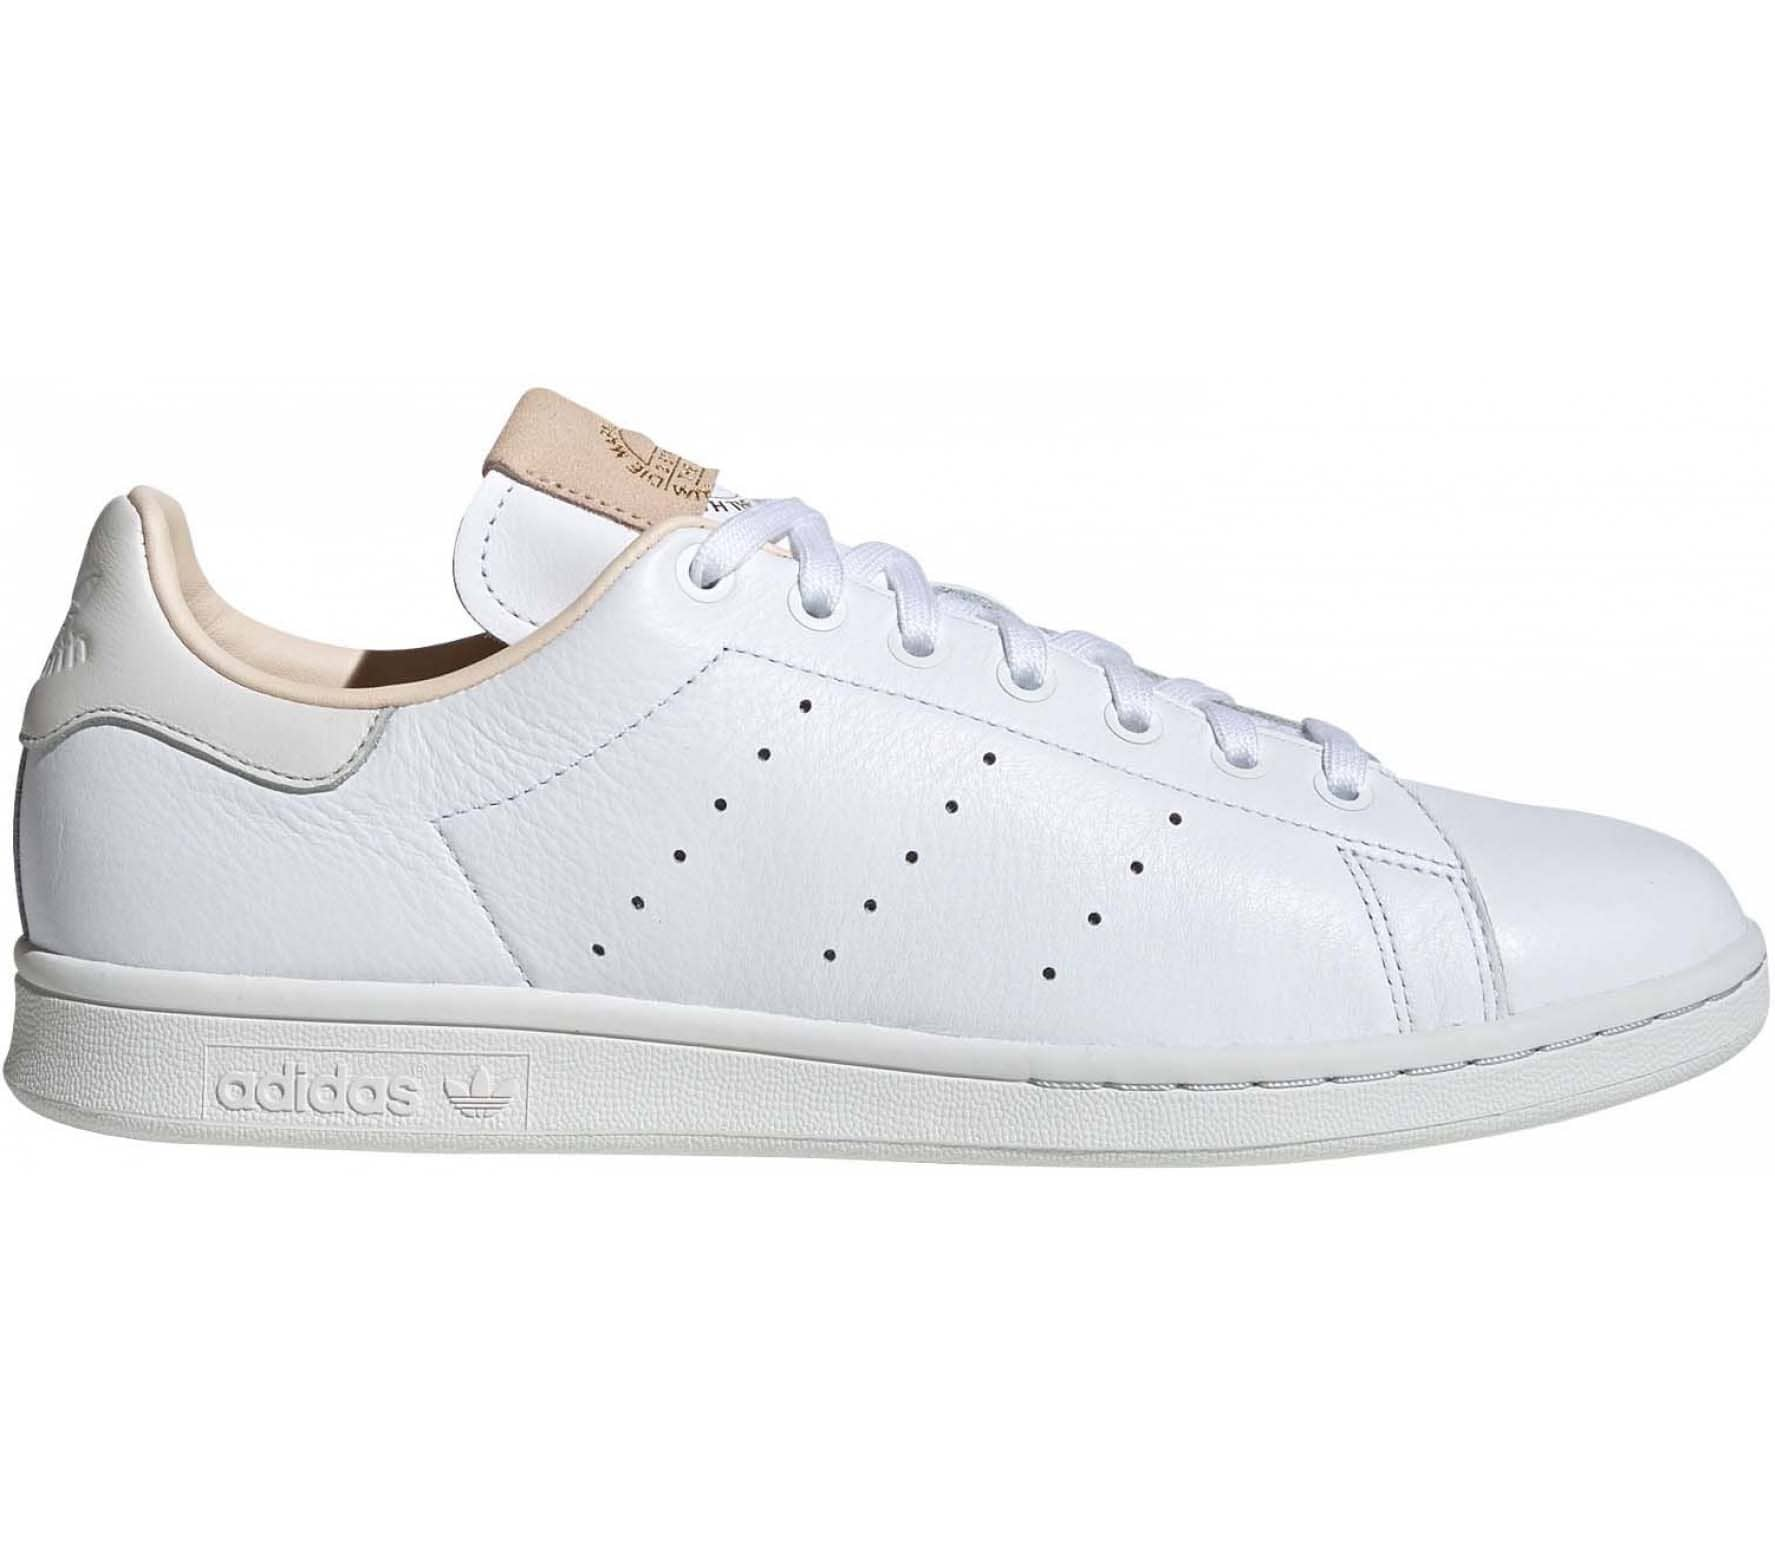 Stan Smith 'Home of Classics' Unisex Sneakers